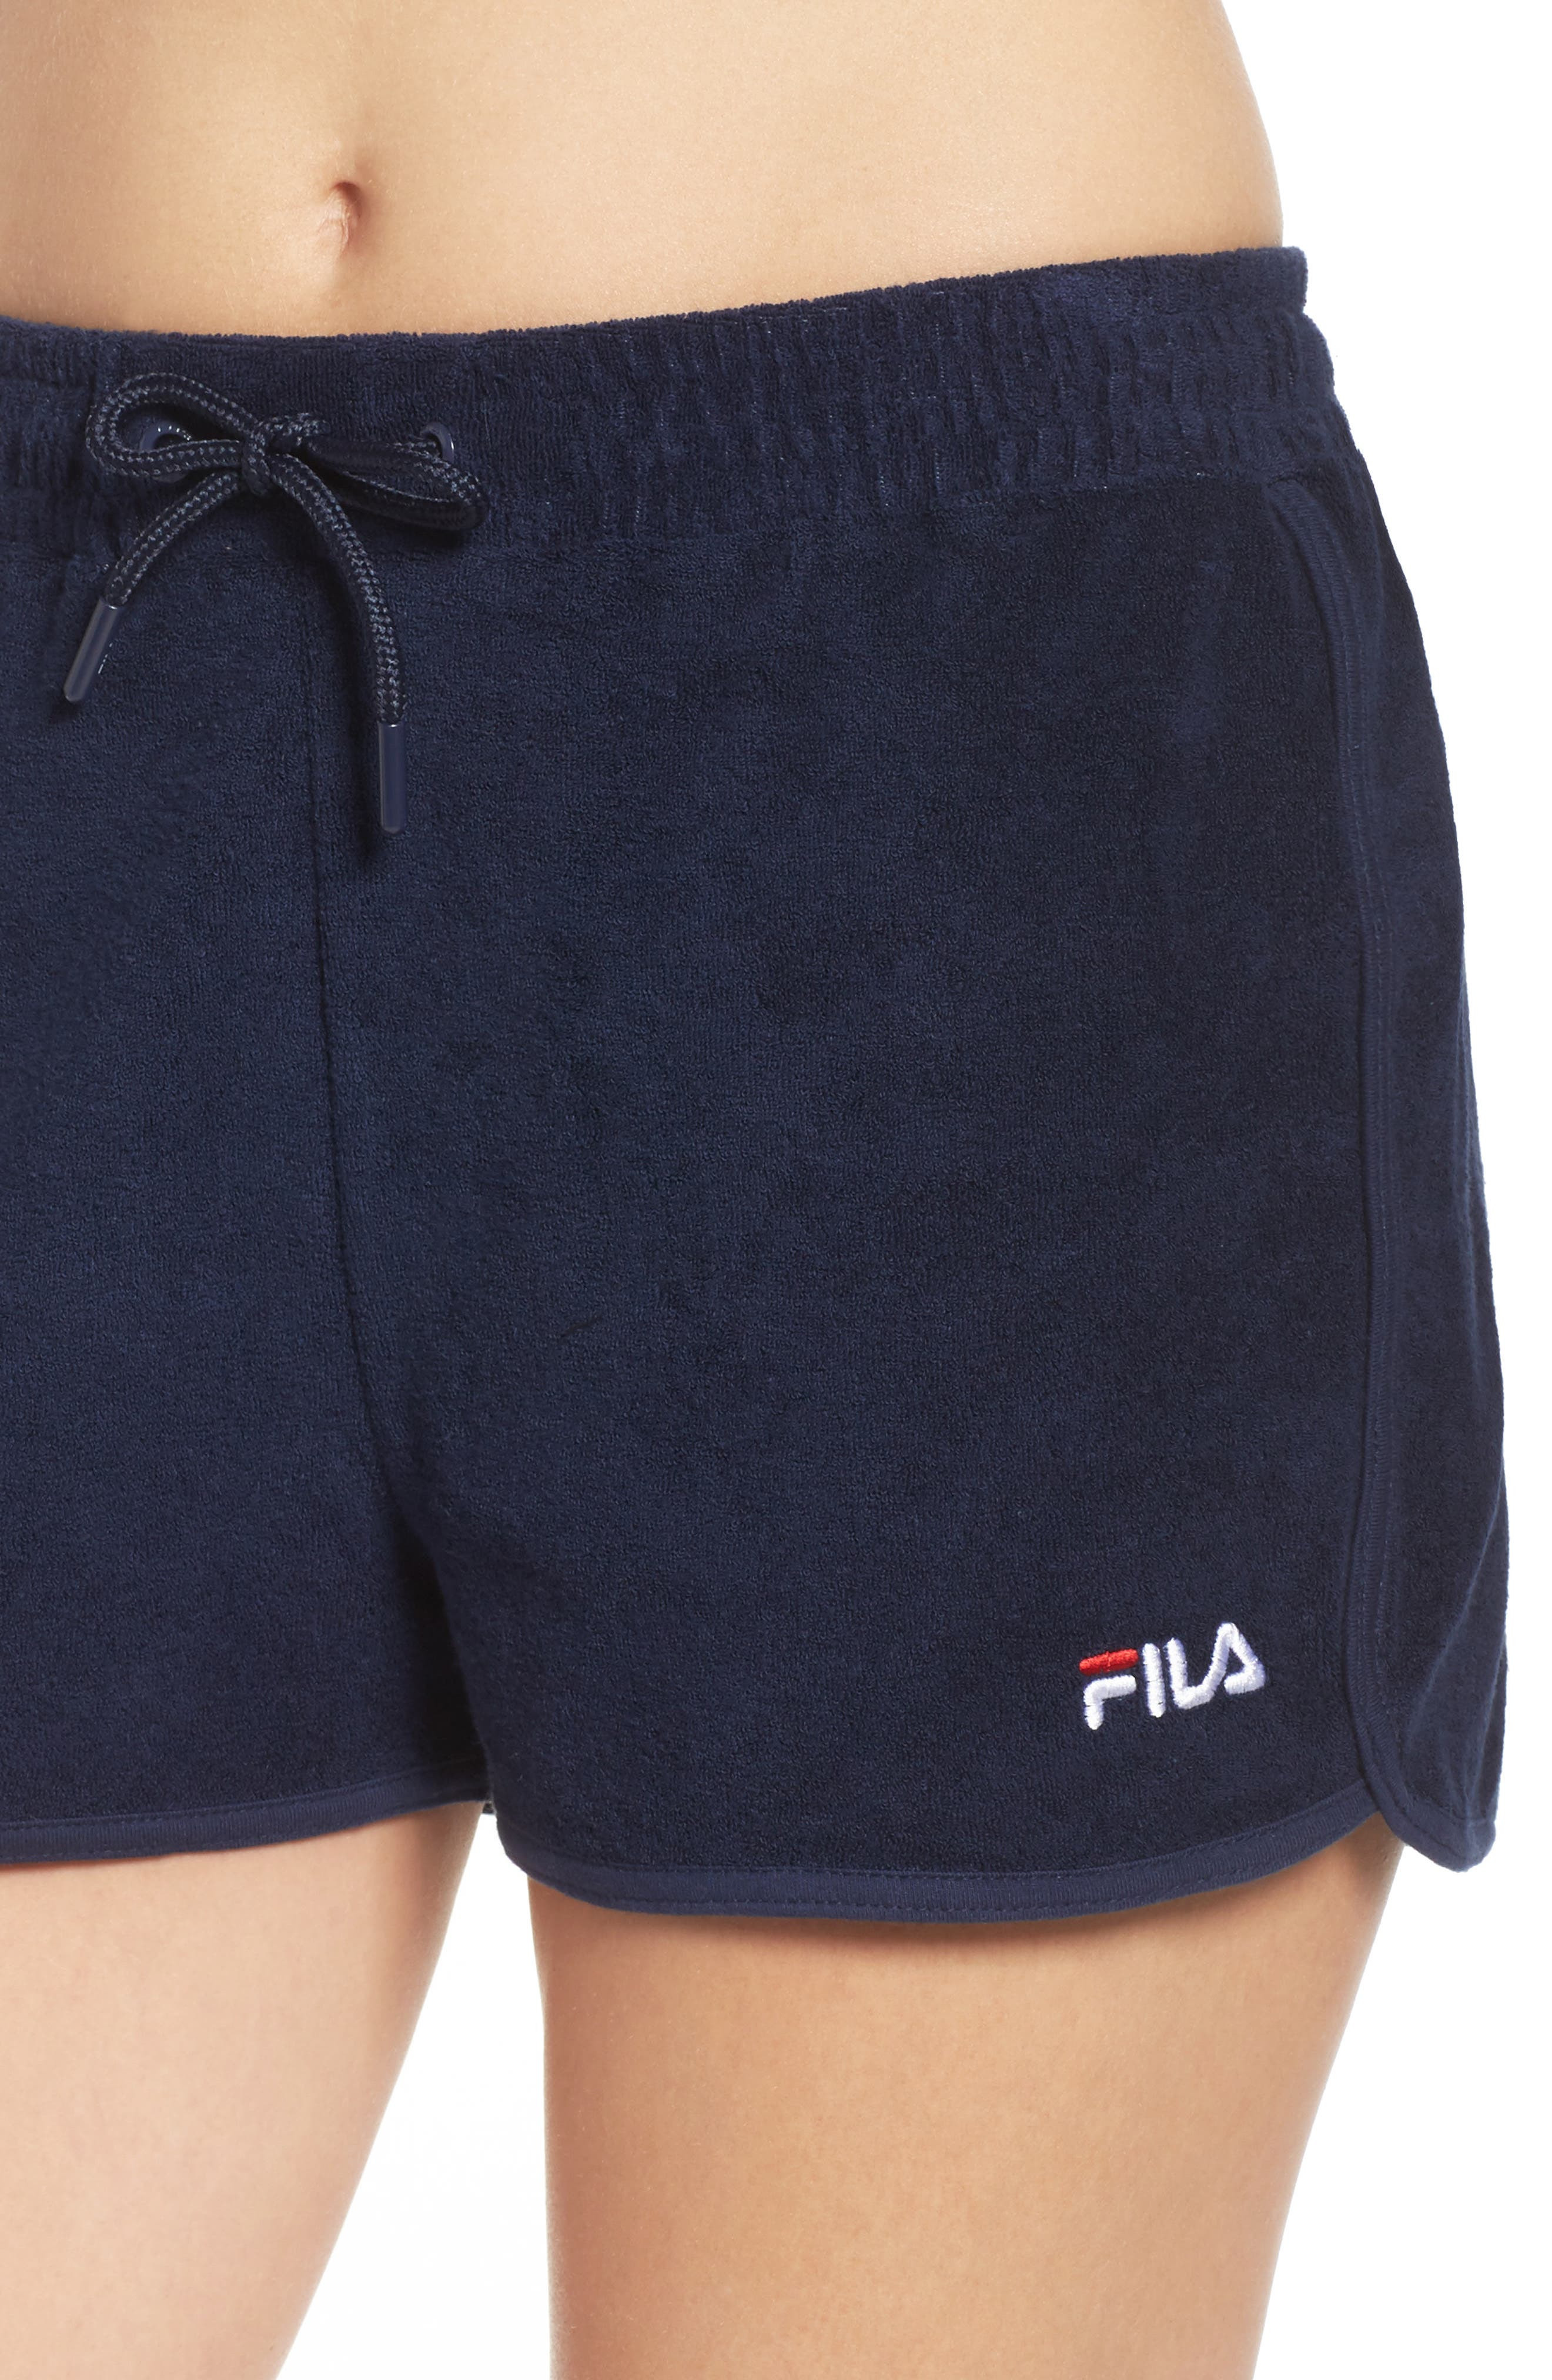 Follie Shorts,                             Alternate thumbnail 4, color,                             410